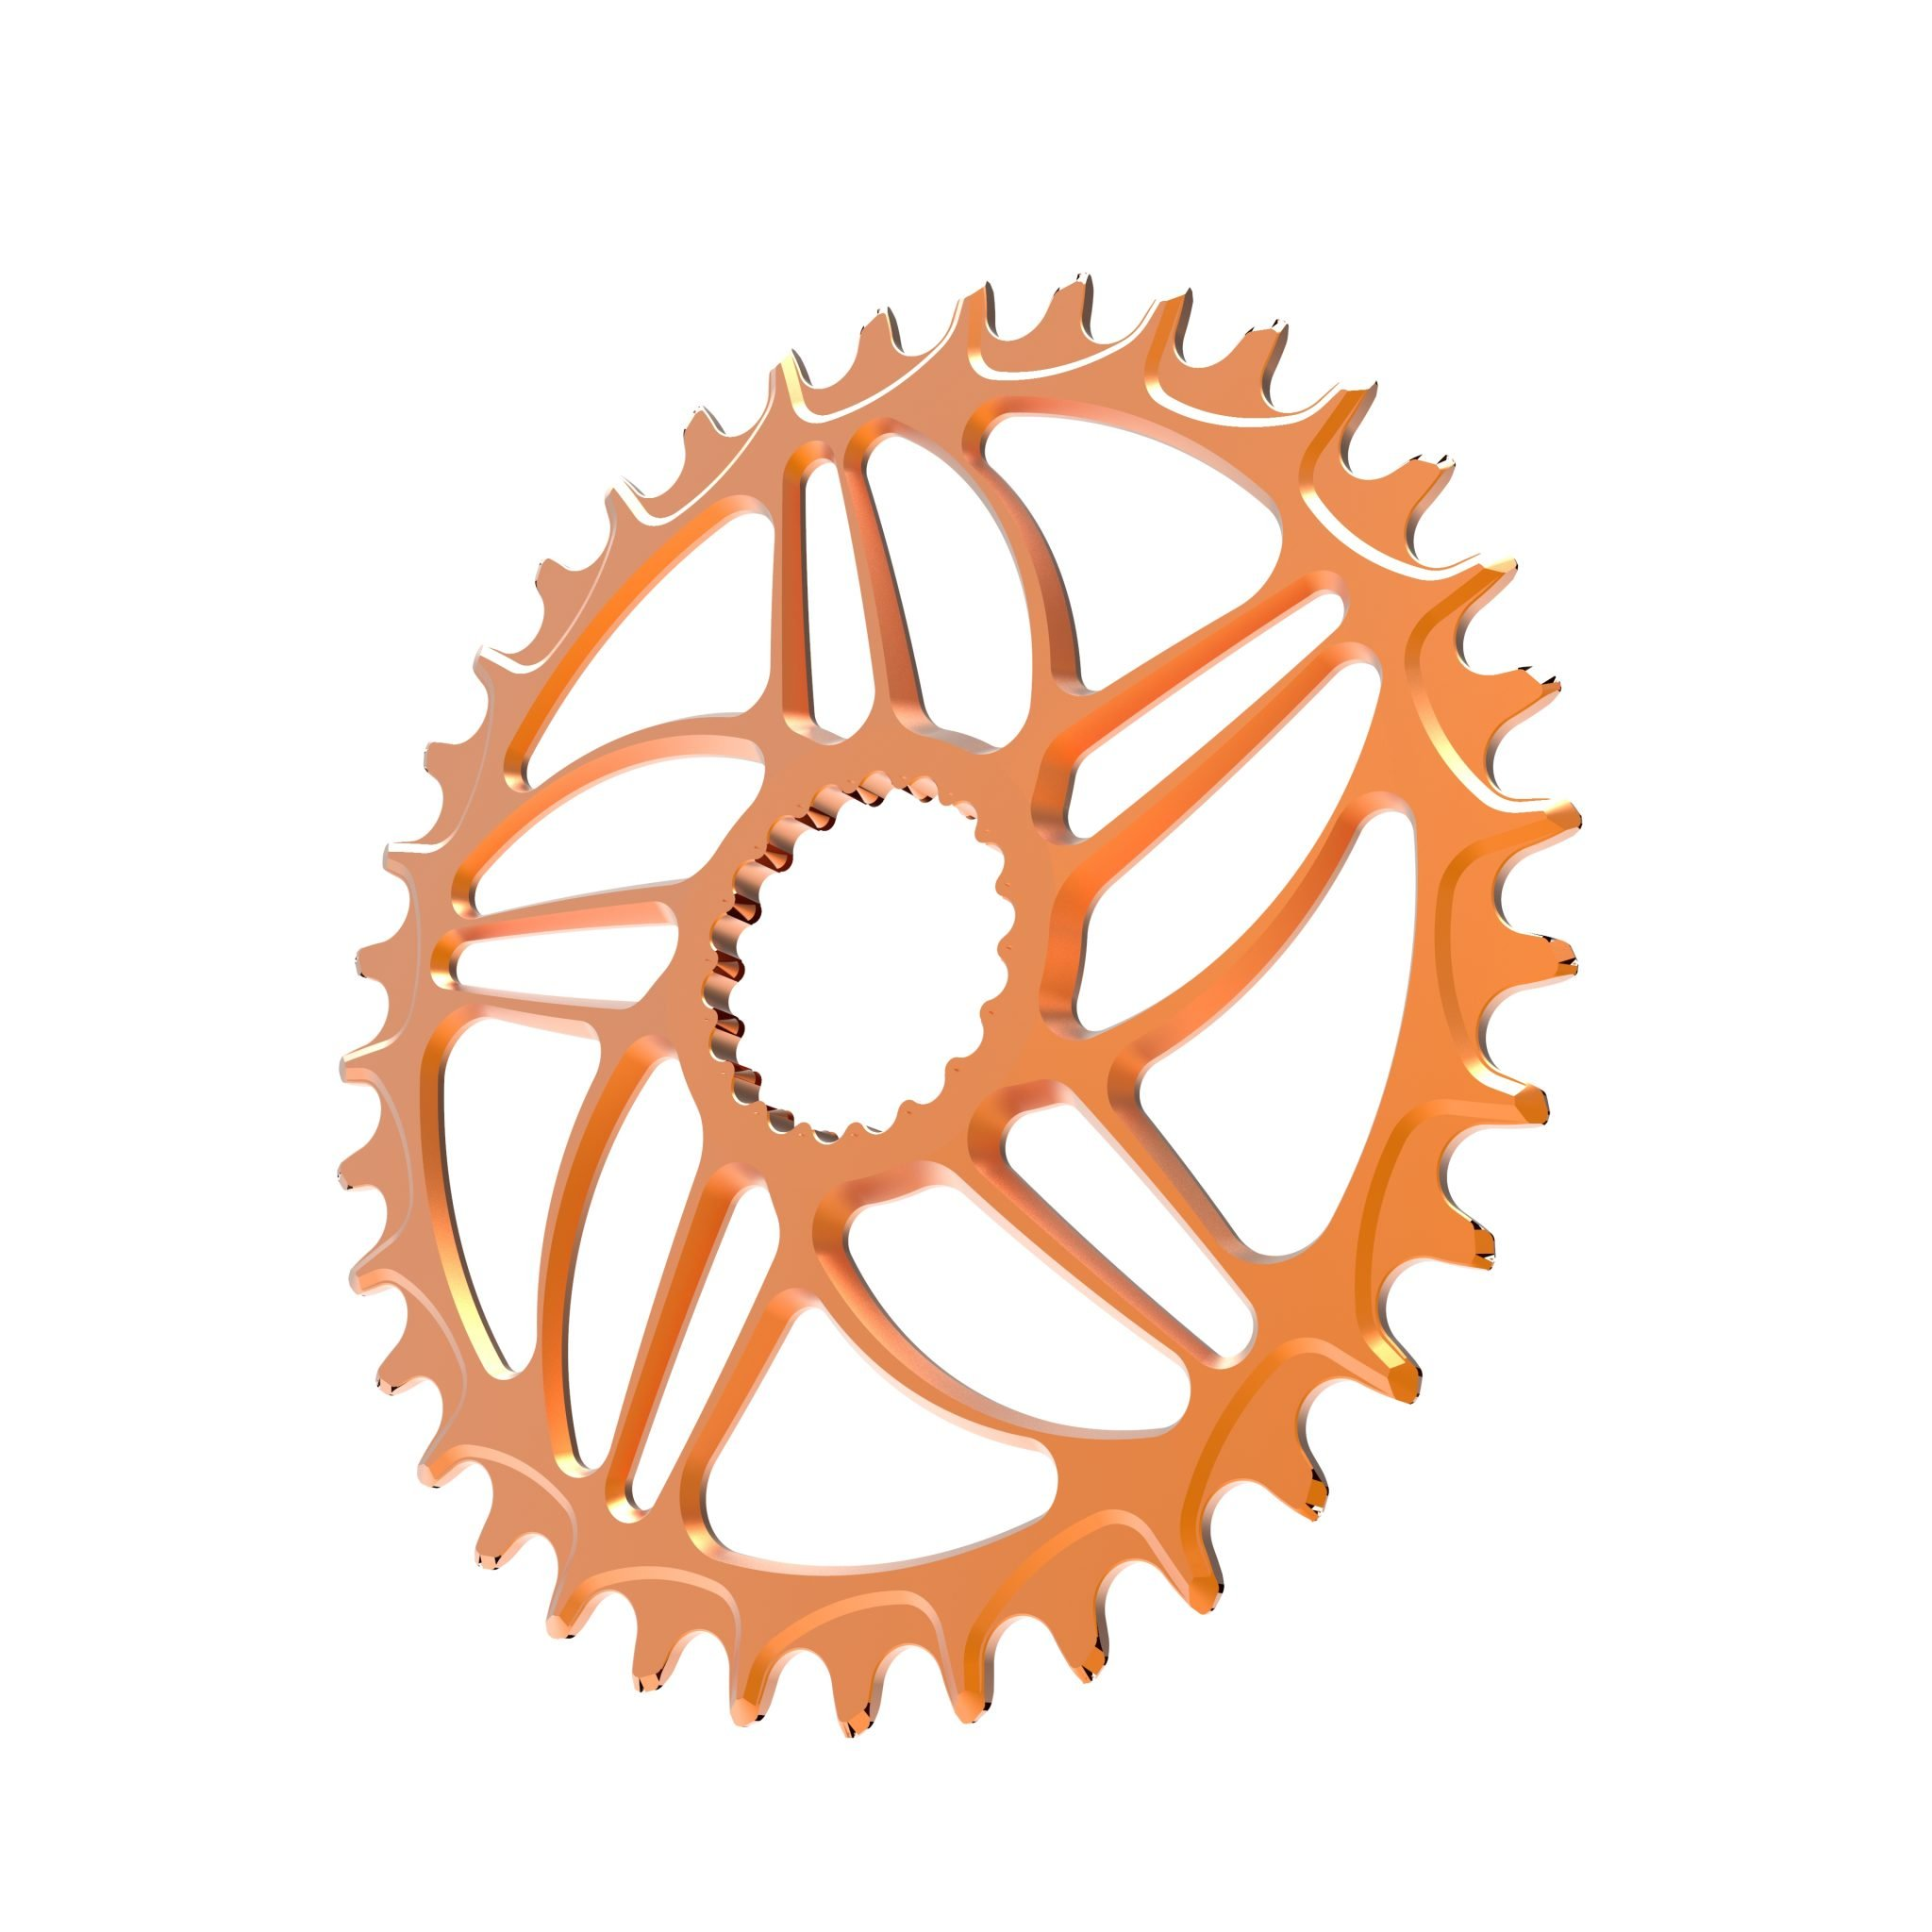 36T_R_Cannondale_BOOST_Orange.396 (1)